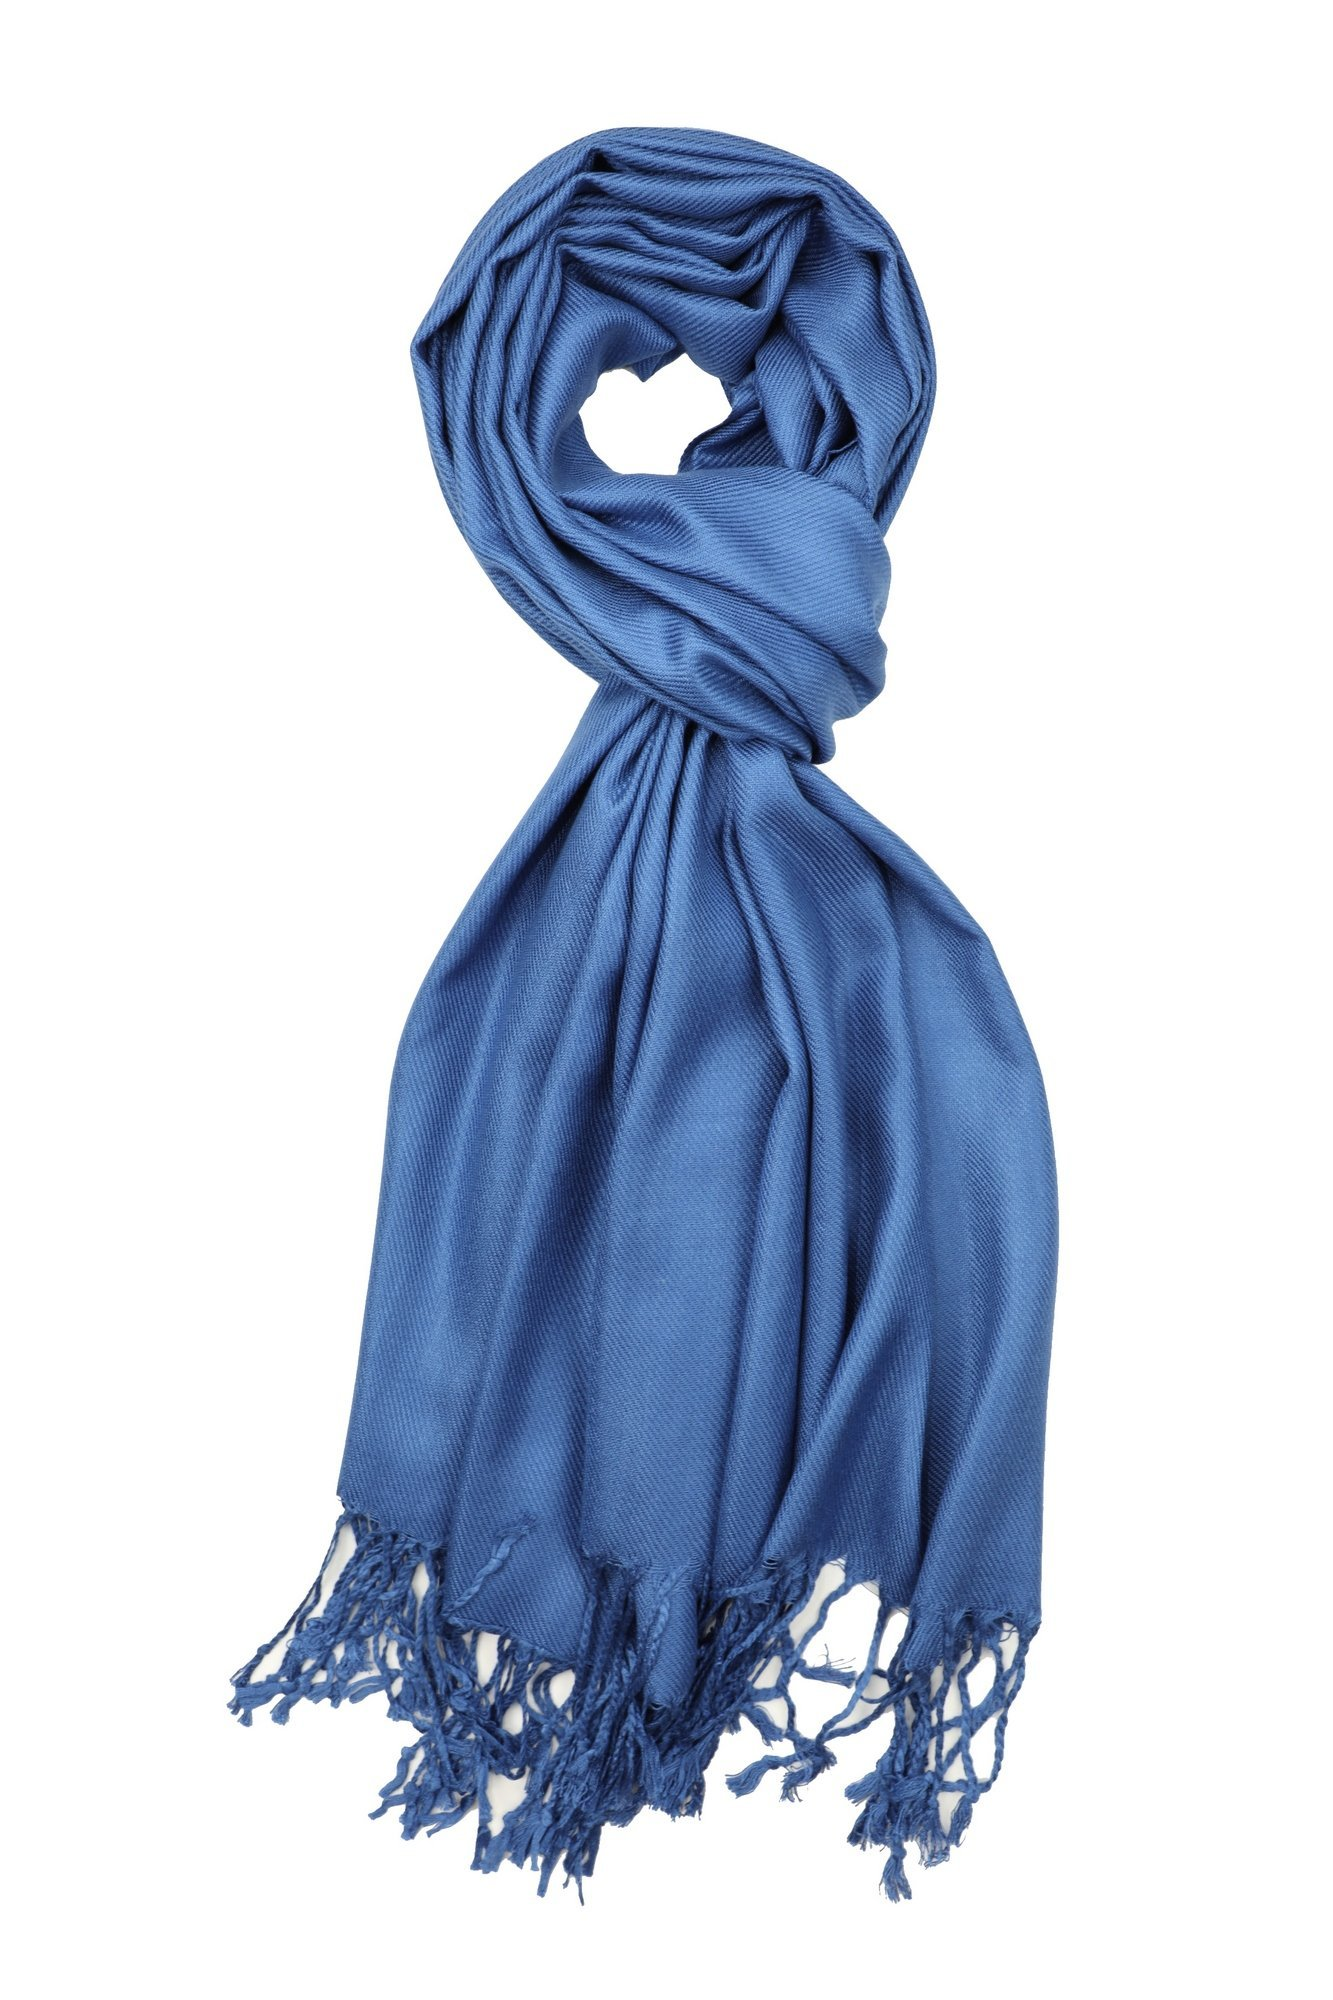 Achillea Large Soft Silky Pashmina Shawl Wrap Scarf in Solid Colors (Cobalt Blue) by Achillea (Image #2)